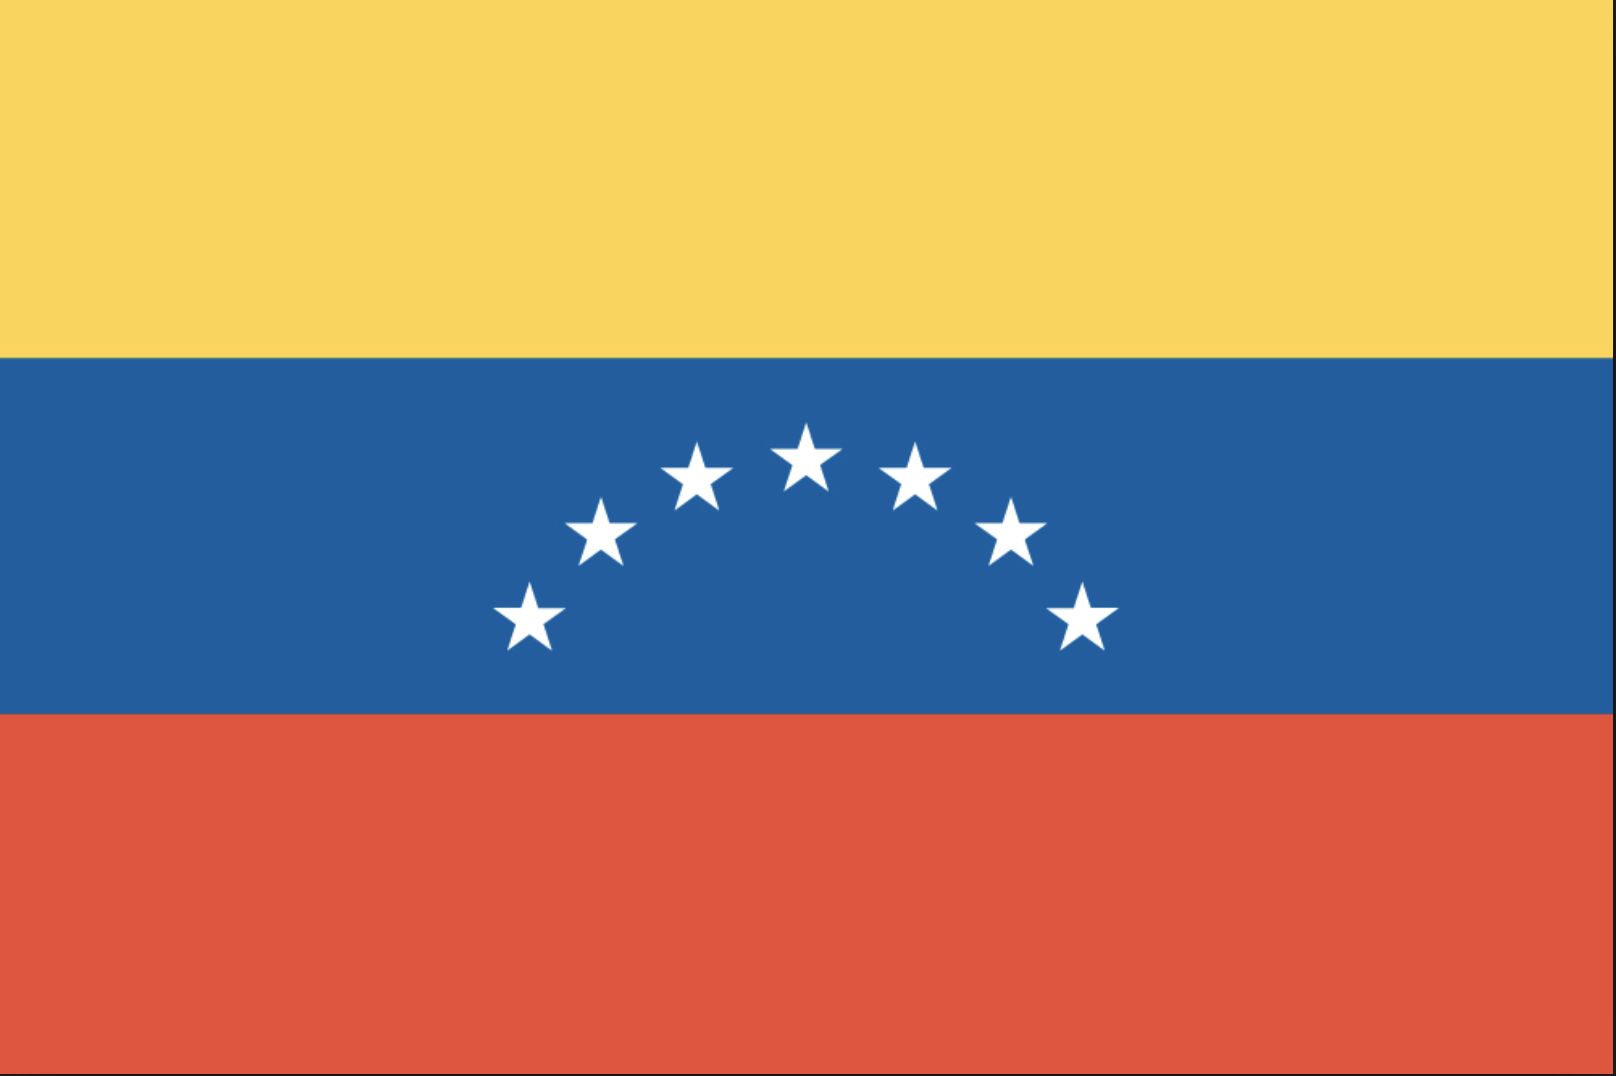 Image of flag of Venezuela